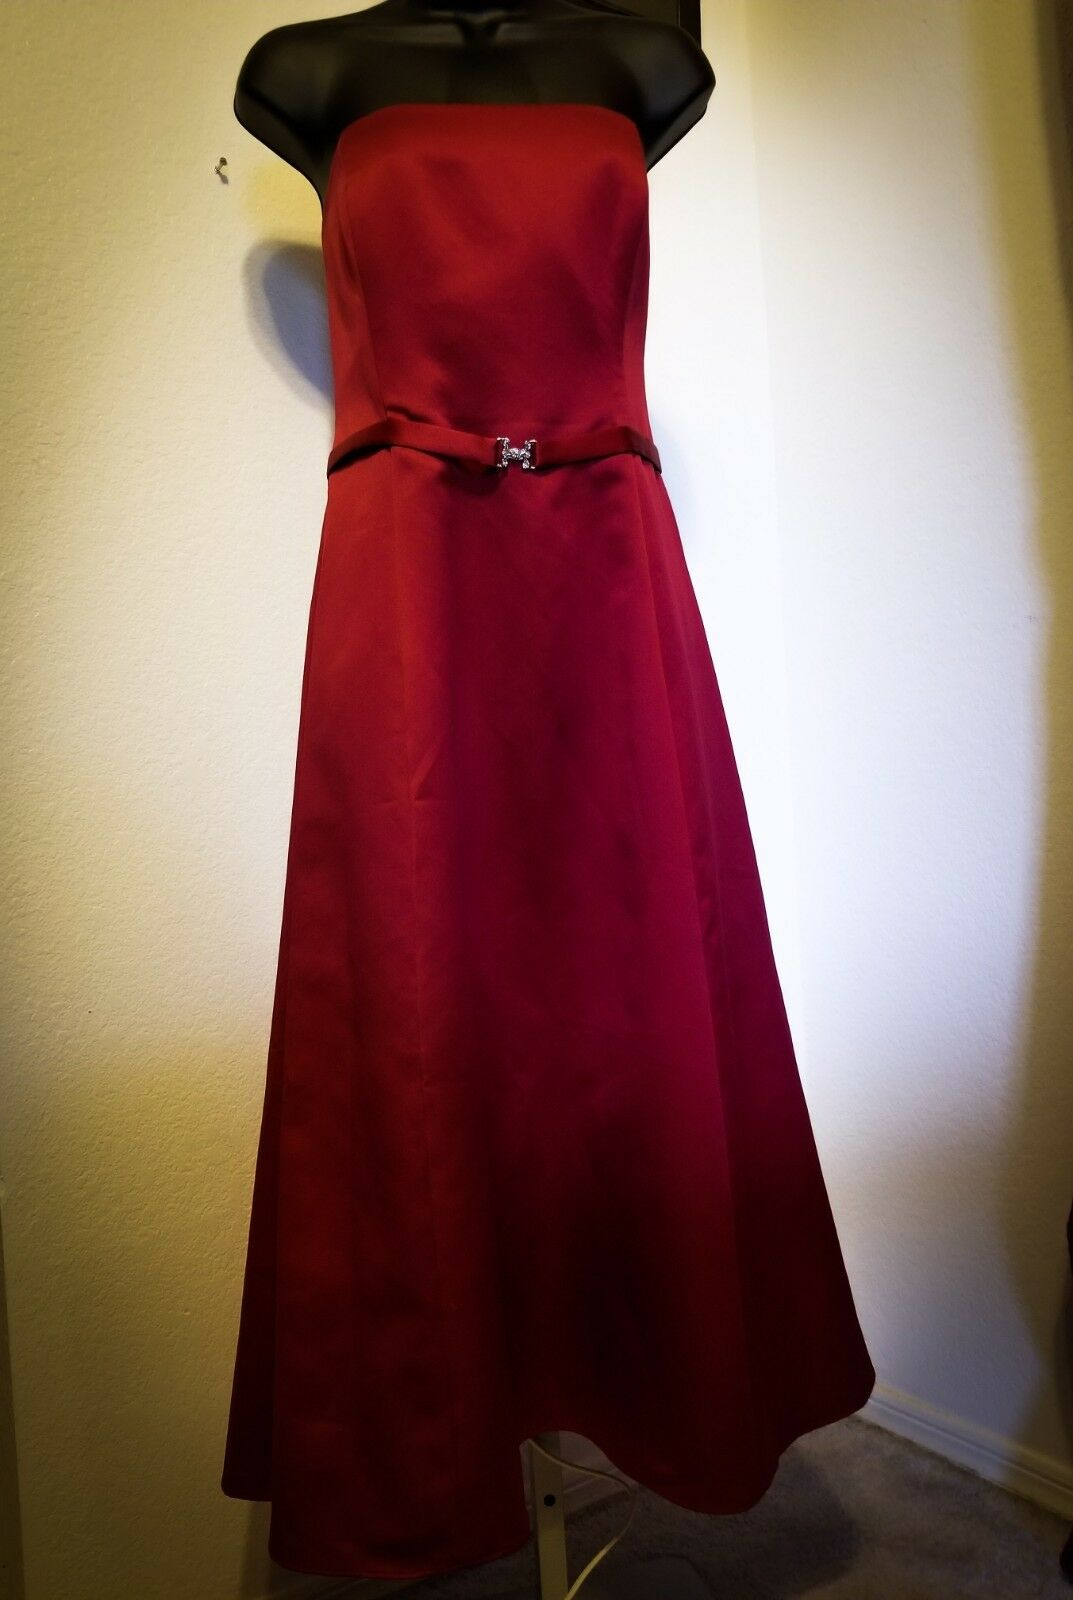 Smooth Mid Length Red Formal Gown with Diamond Jeweled Belt